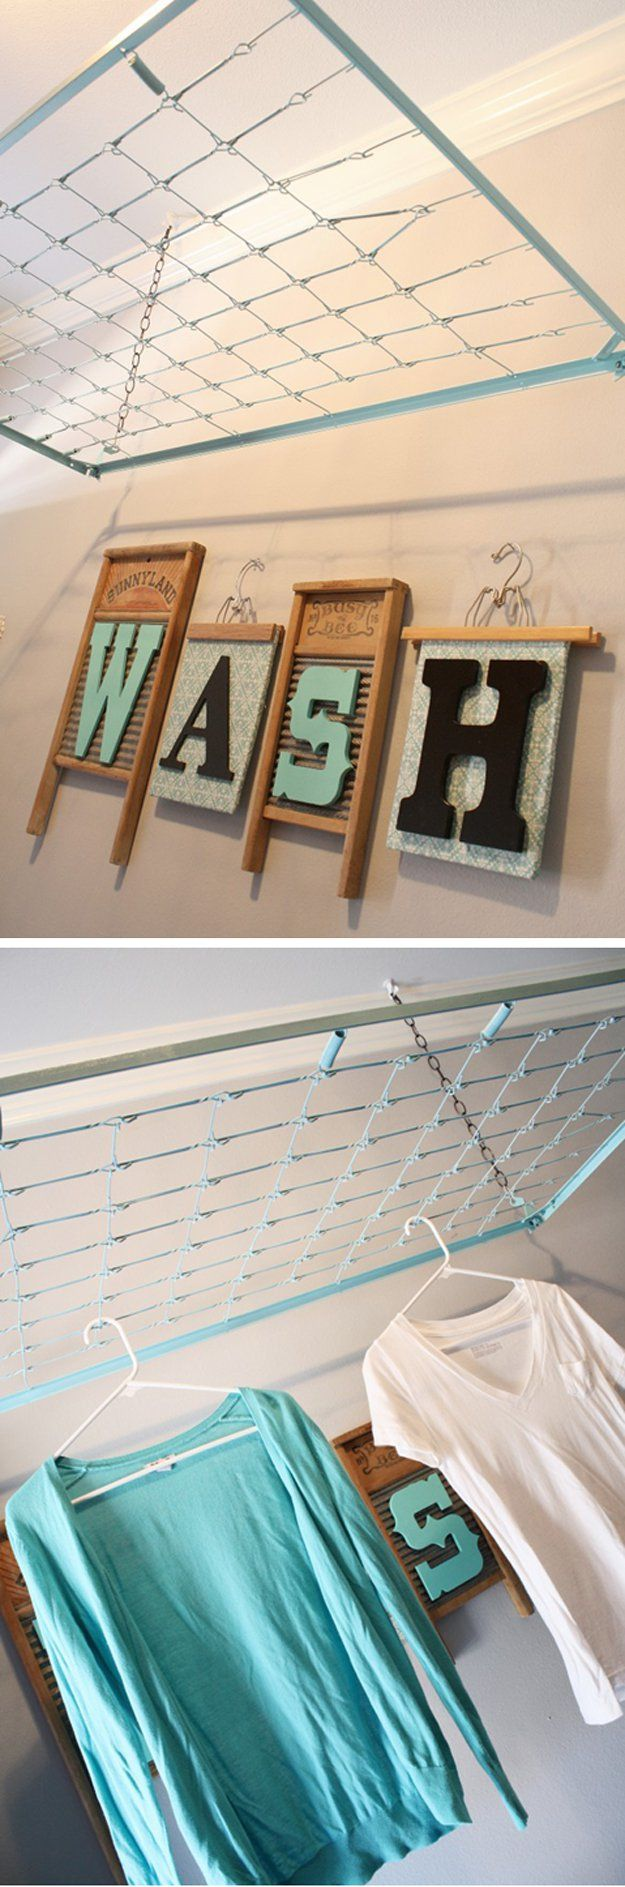 DIY Organization Ideas for Your Laundry Room